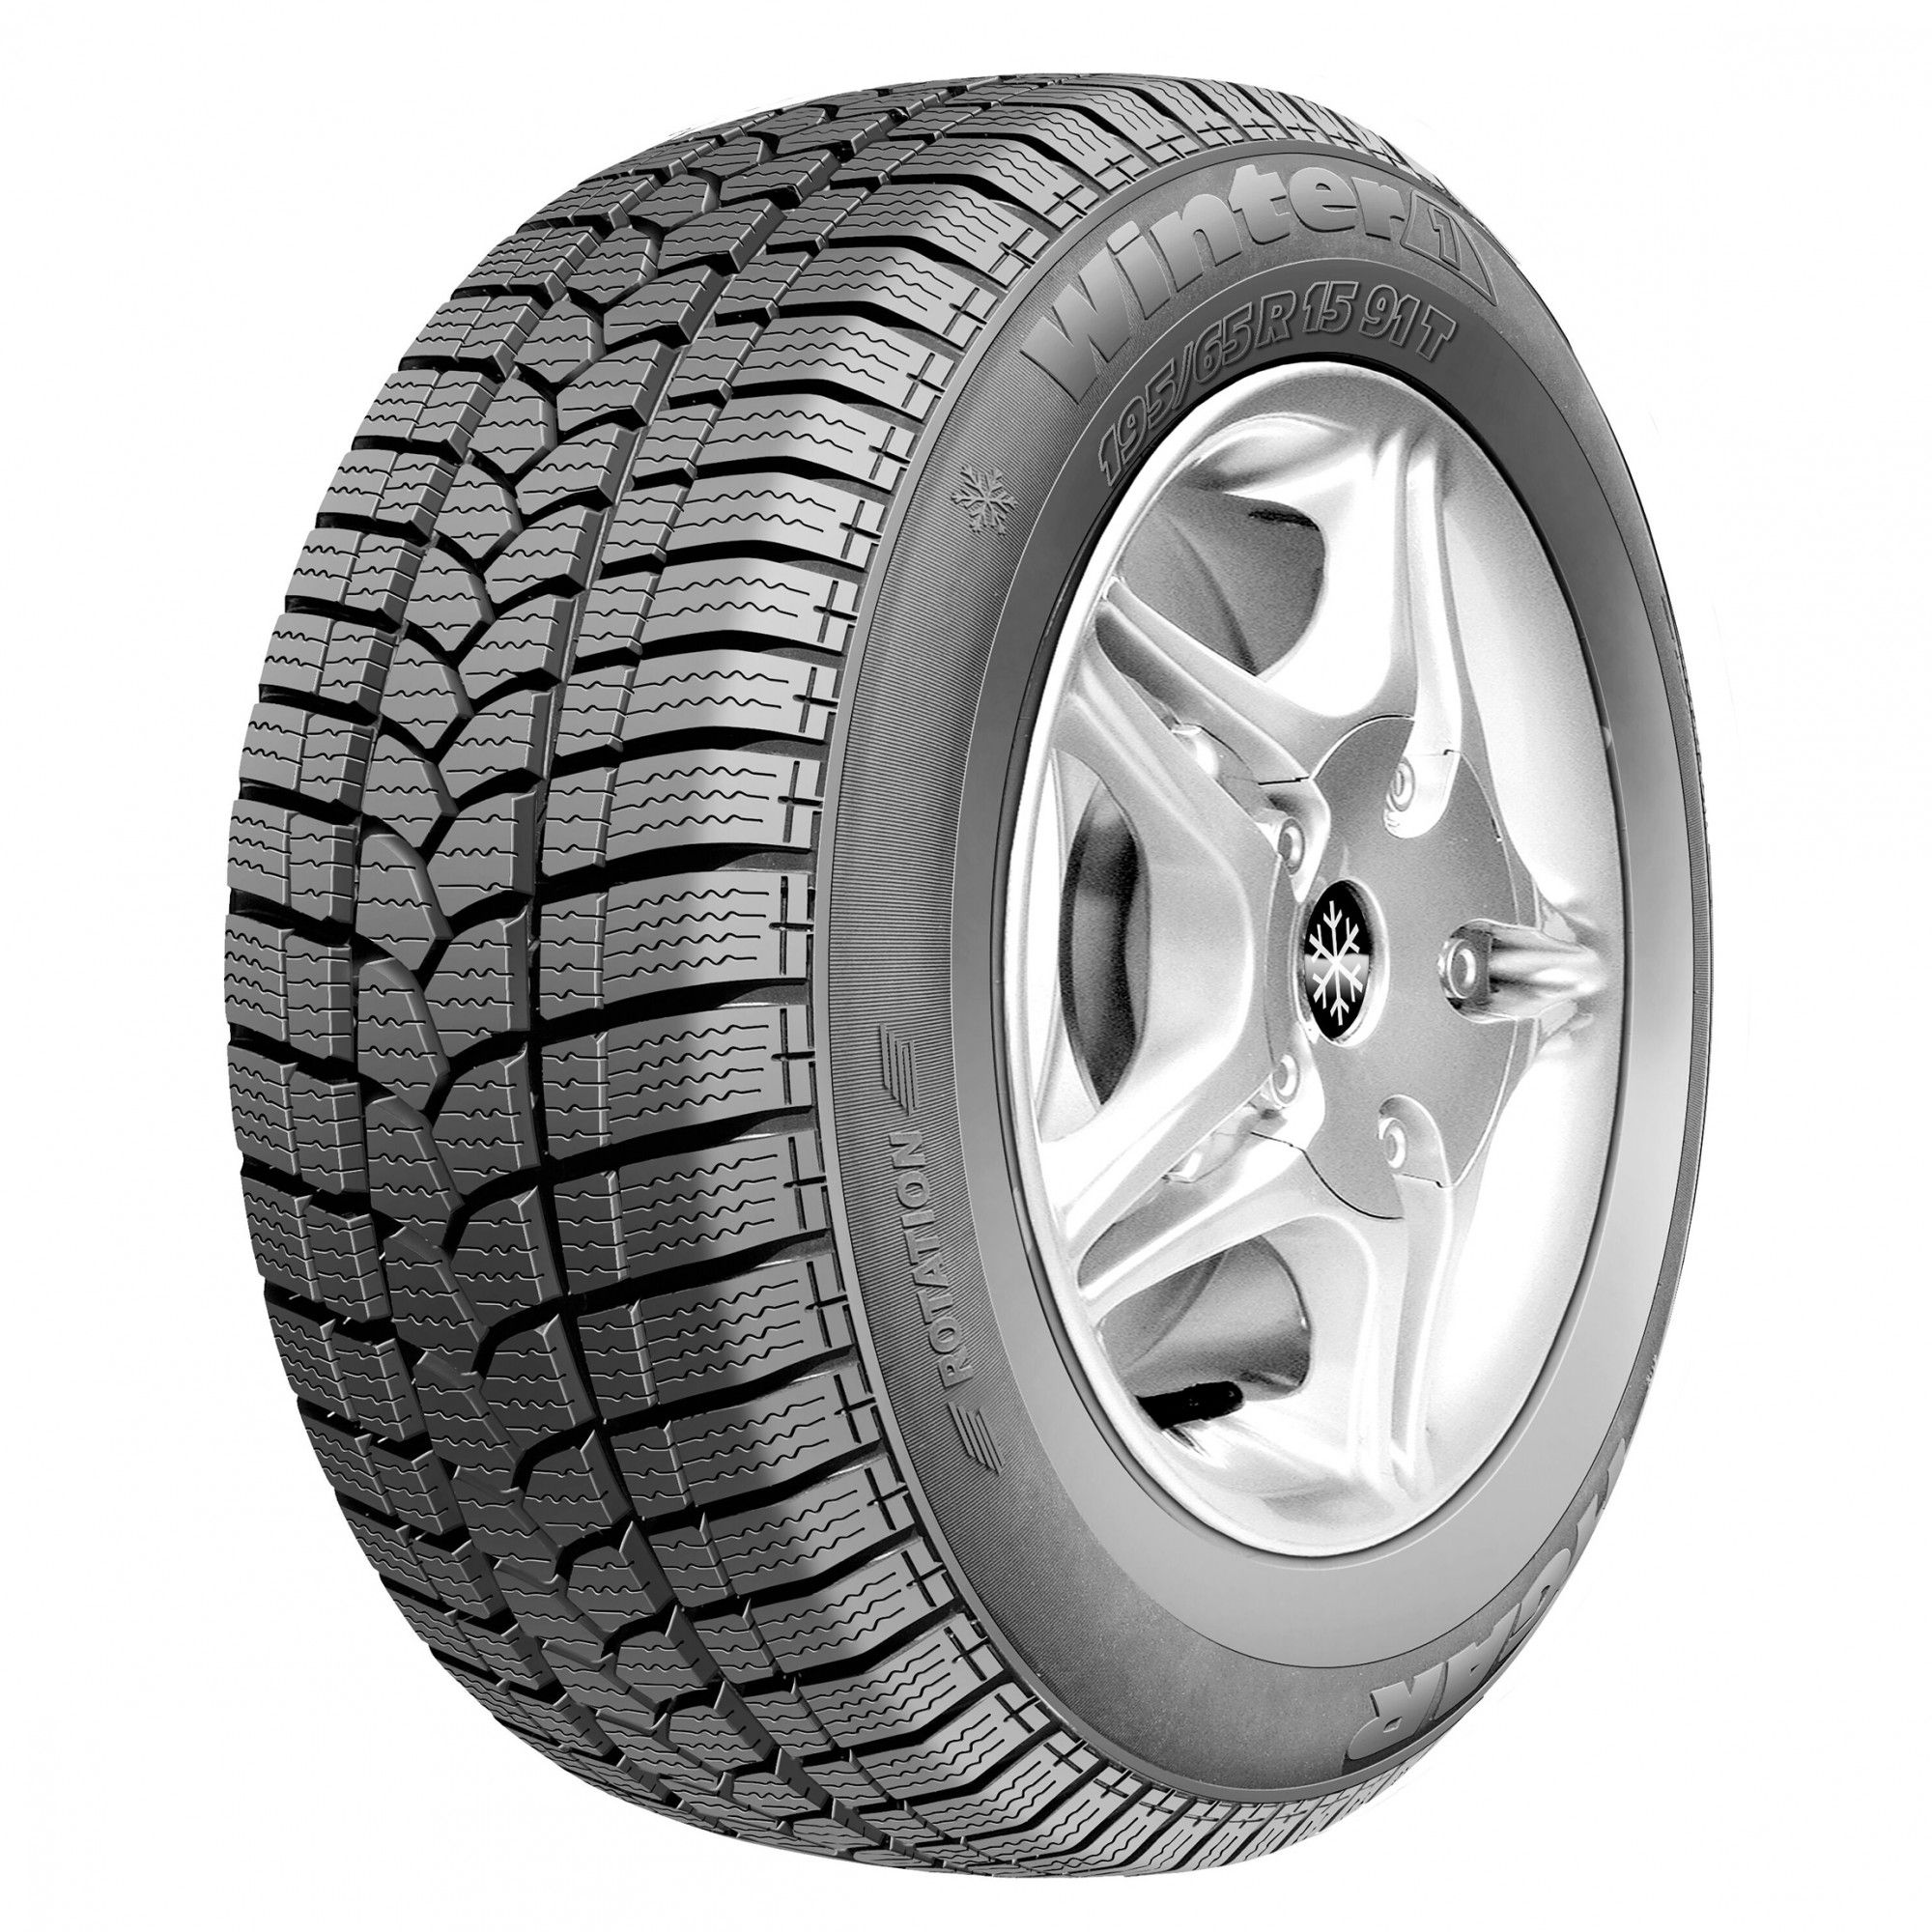 Anvelope Tigar Winter 1 185/65R14 86T Iarna imagine